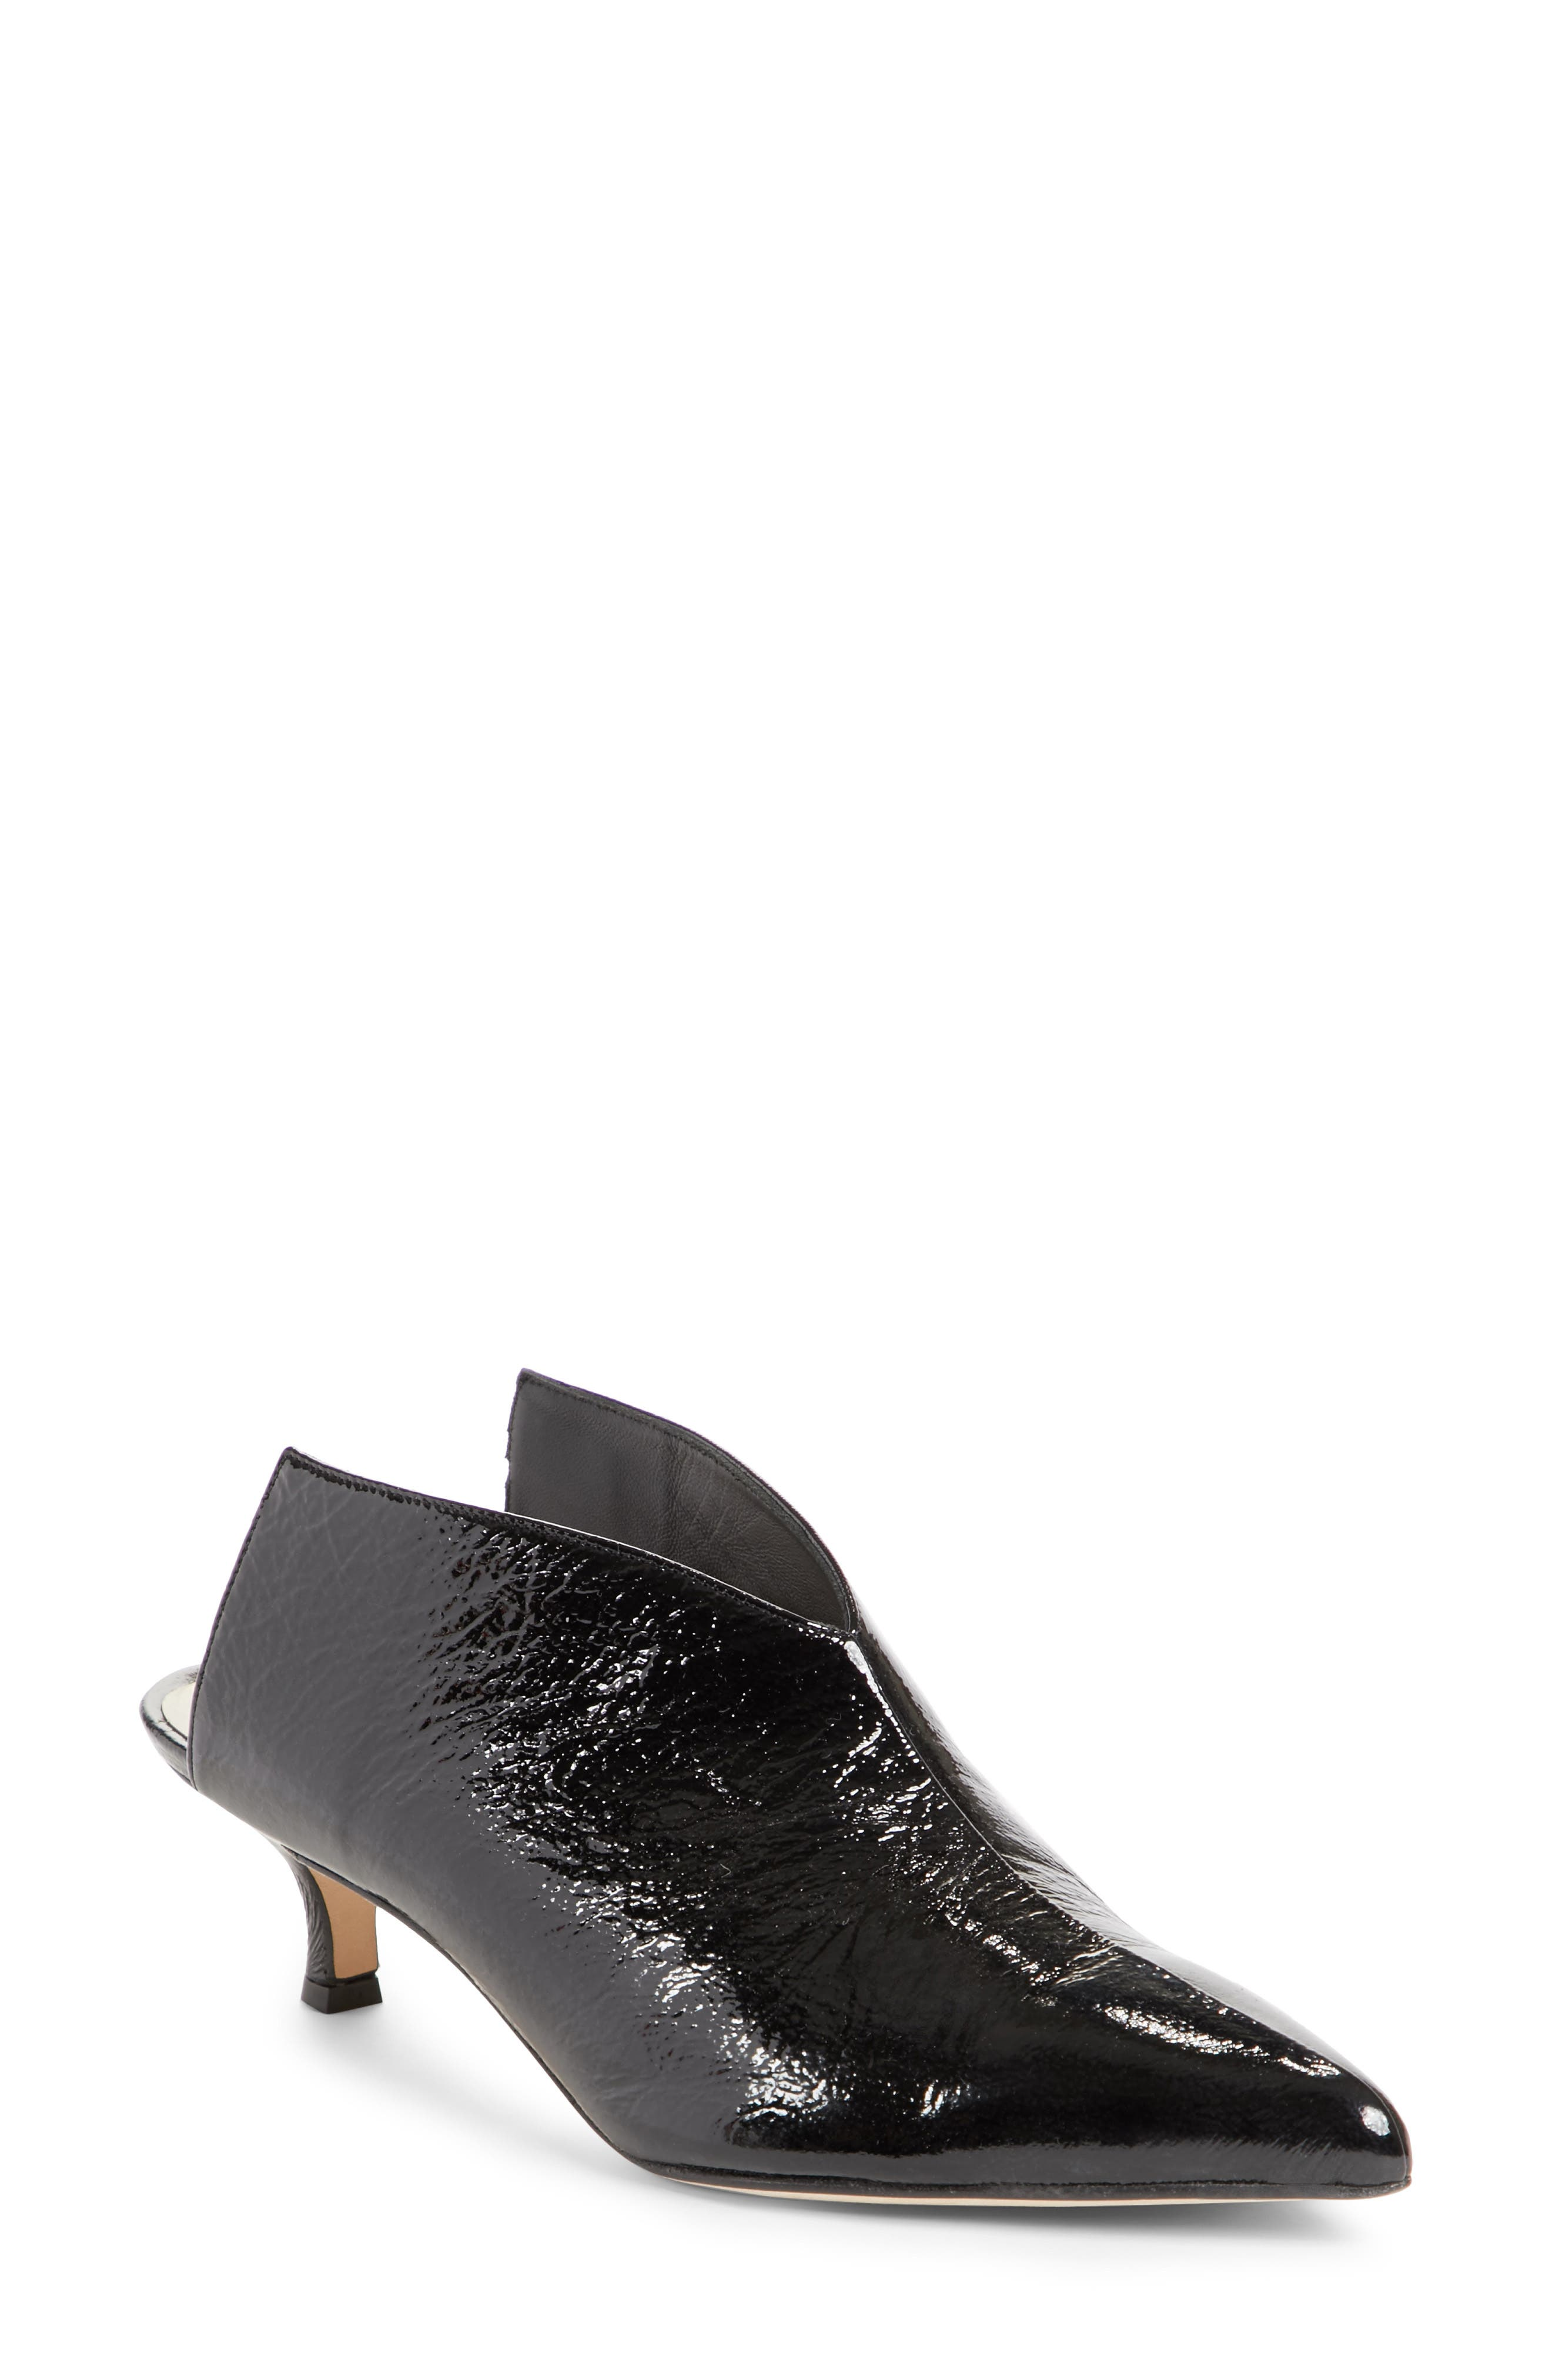 Jase Pointy Toe Mule,                         Main,                         color, Black